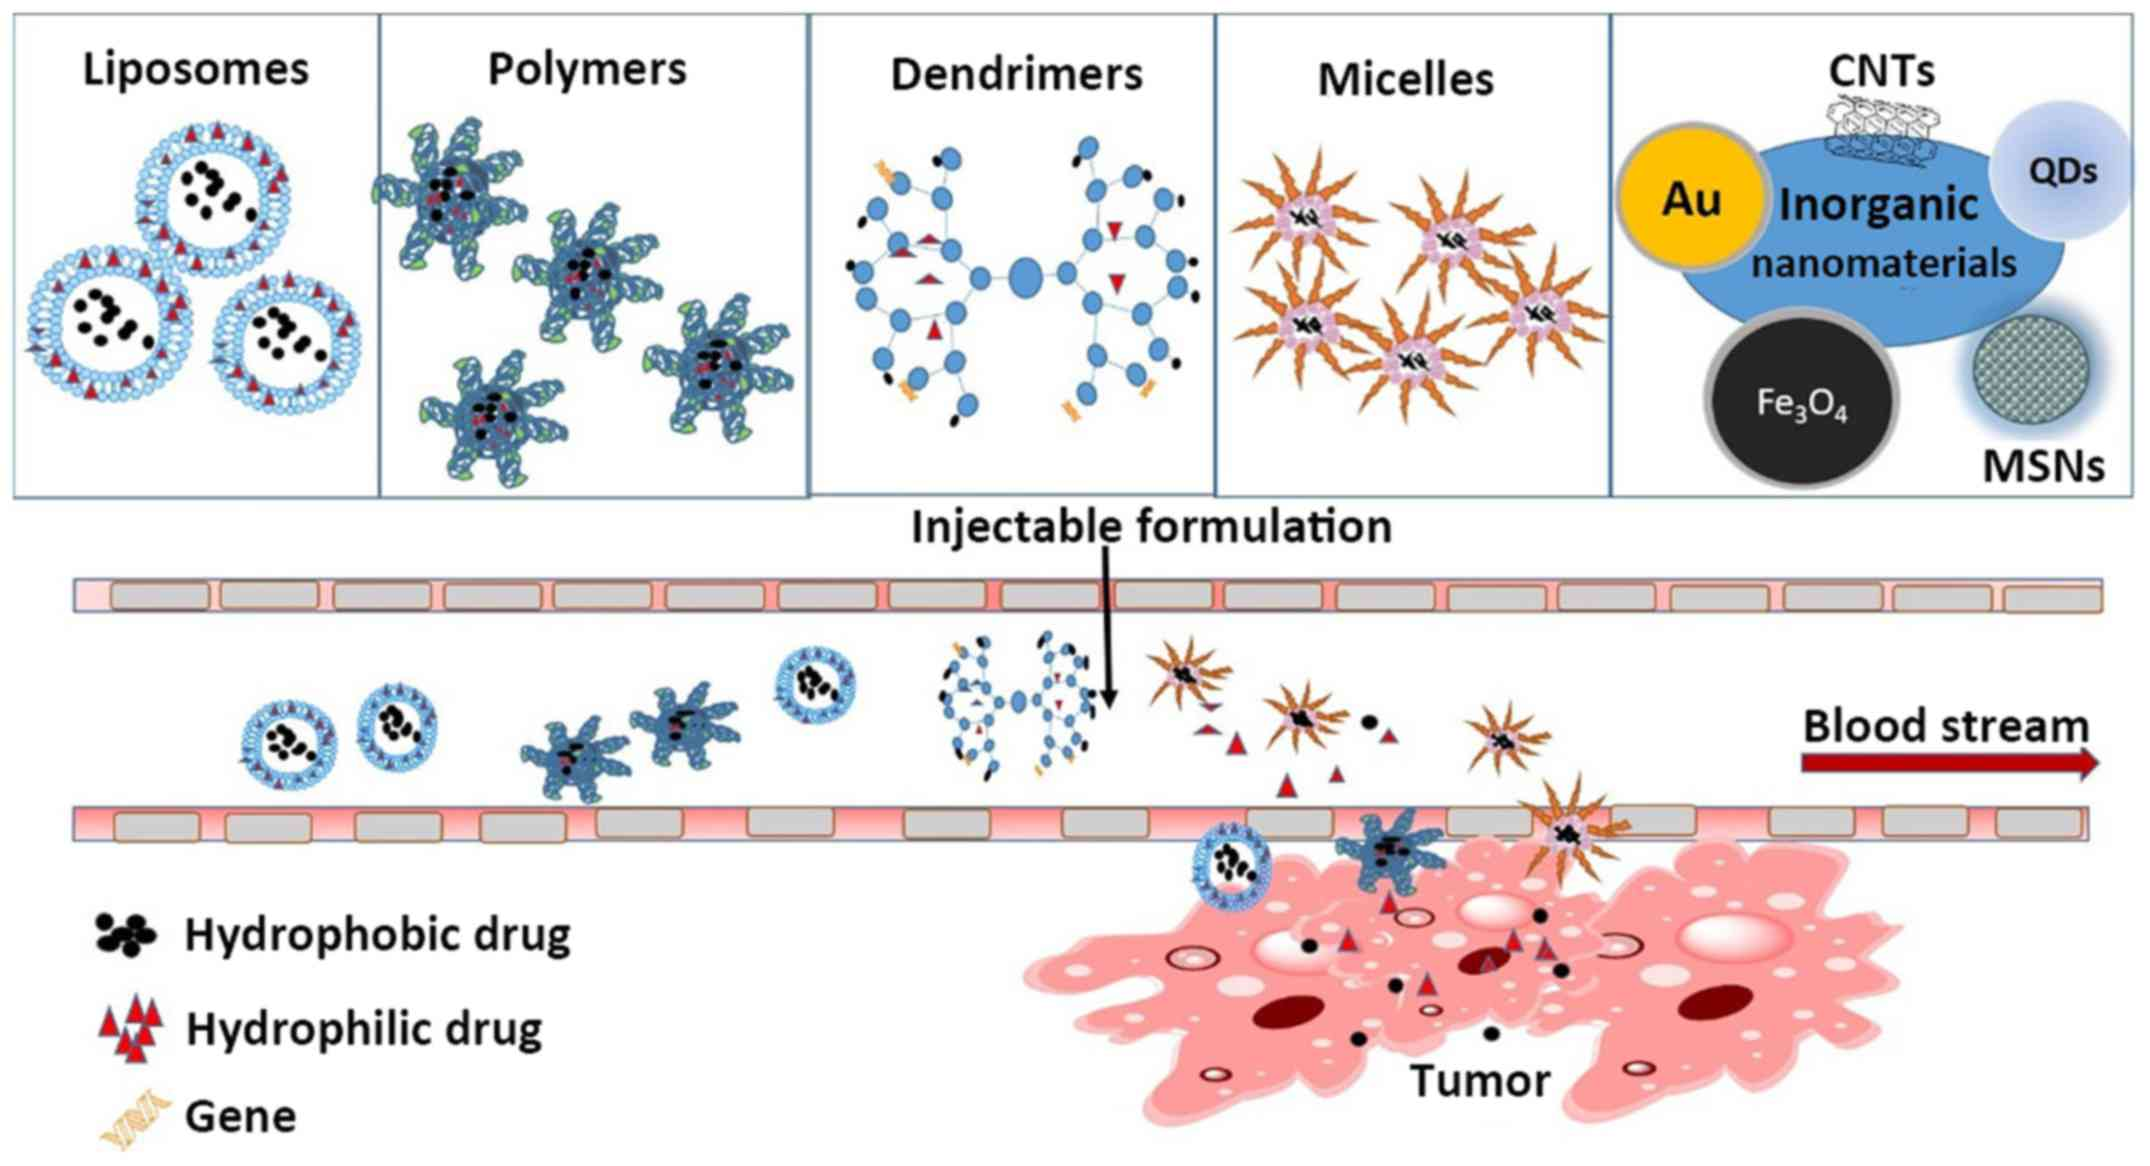 Cancer Drug Delivery In The Nano Era An Overview And Perspectives 1973 Evinrude 135 Wiring Diagram Figure 2 Nanomaterials Used As Carriers For Therapy With Their Distinct Biological Characteristics Can Improve Enhanced